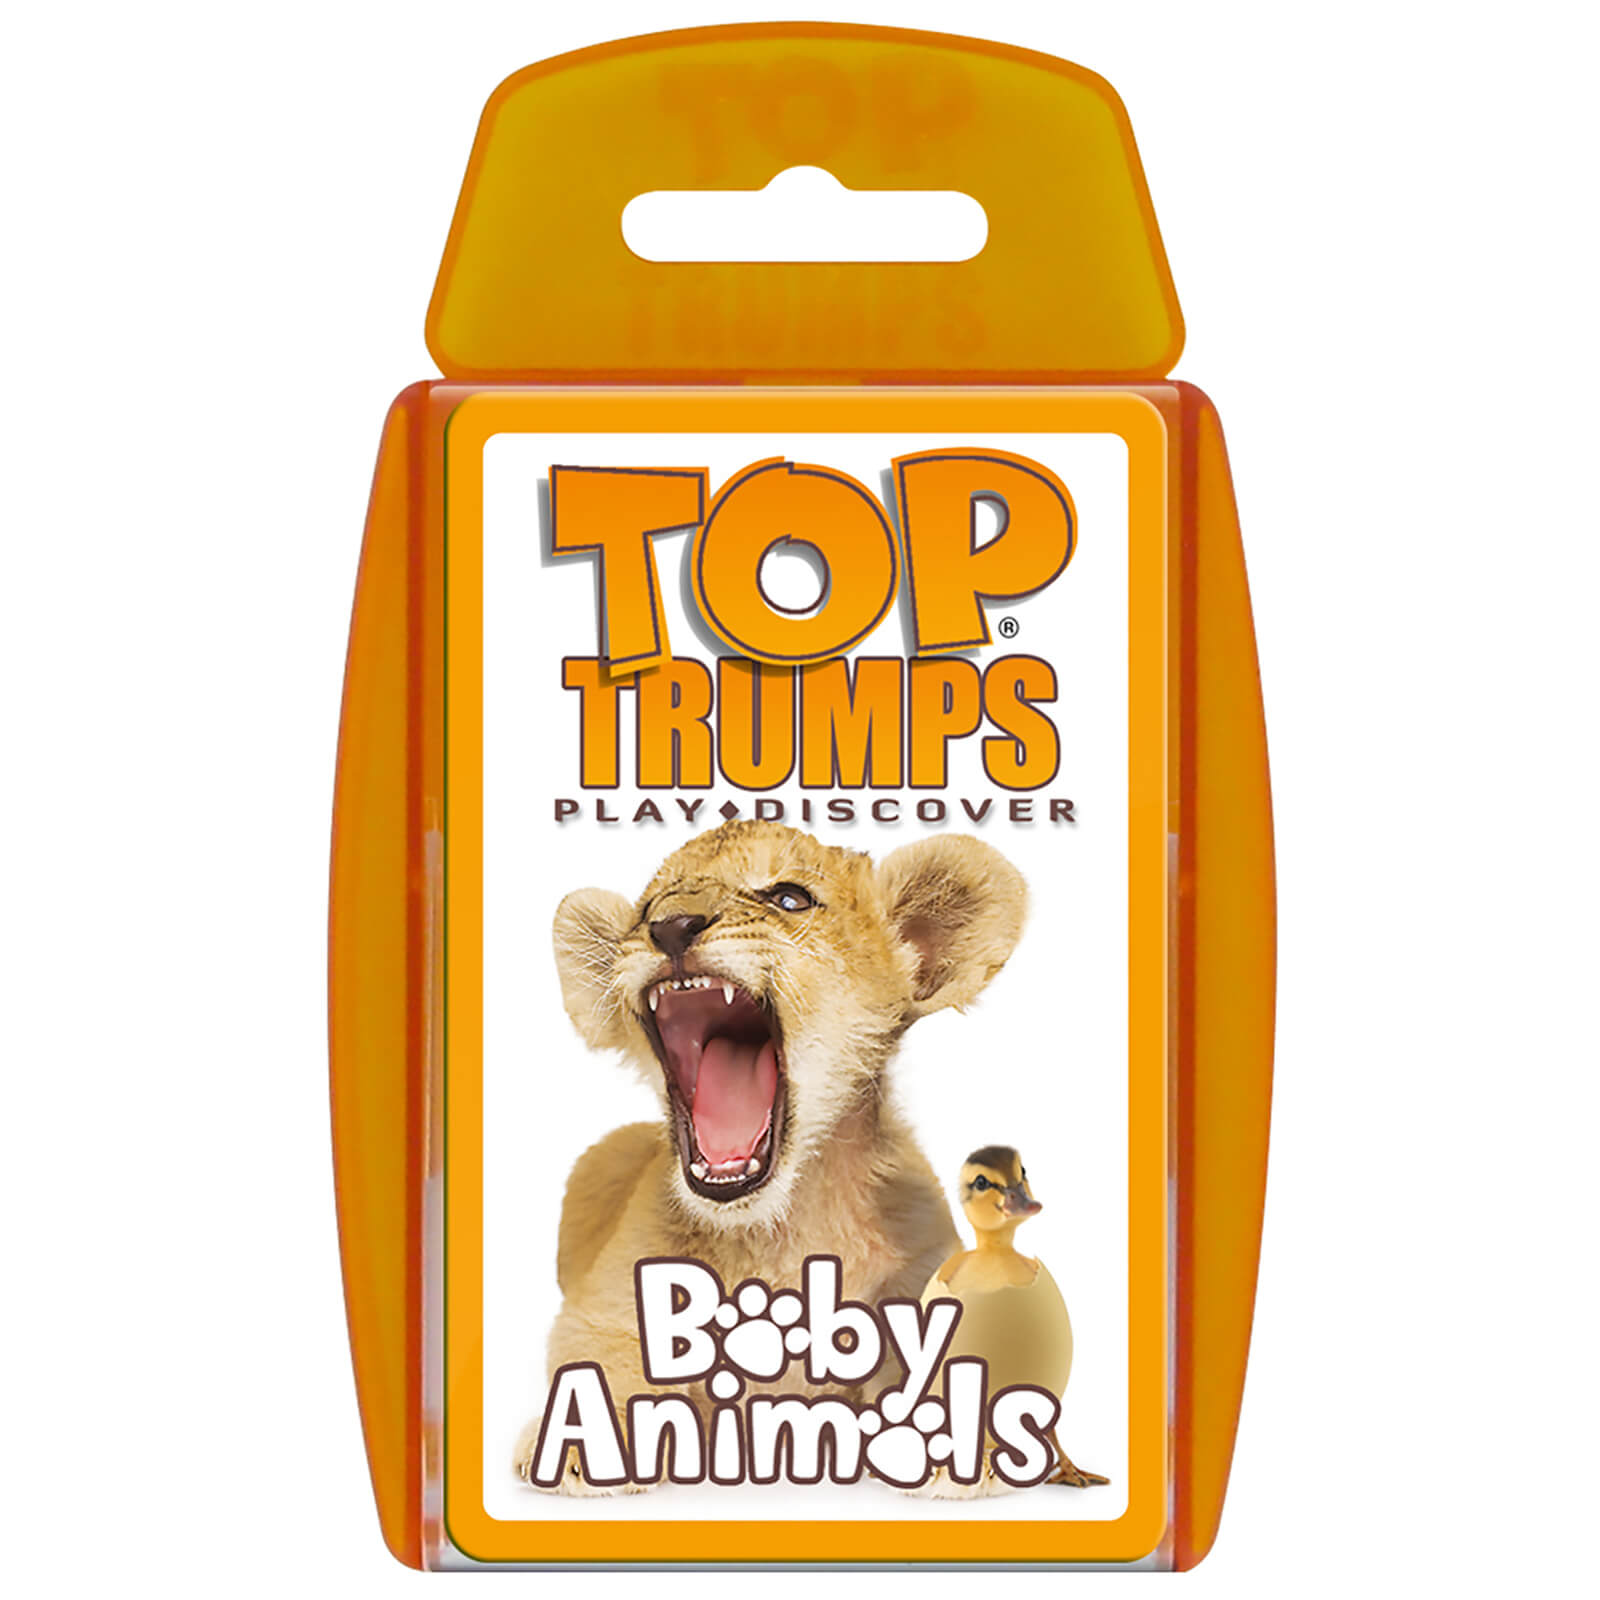 Image of Top Trumps Card Game - Baby Animals Edition